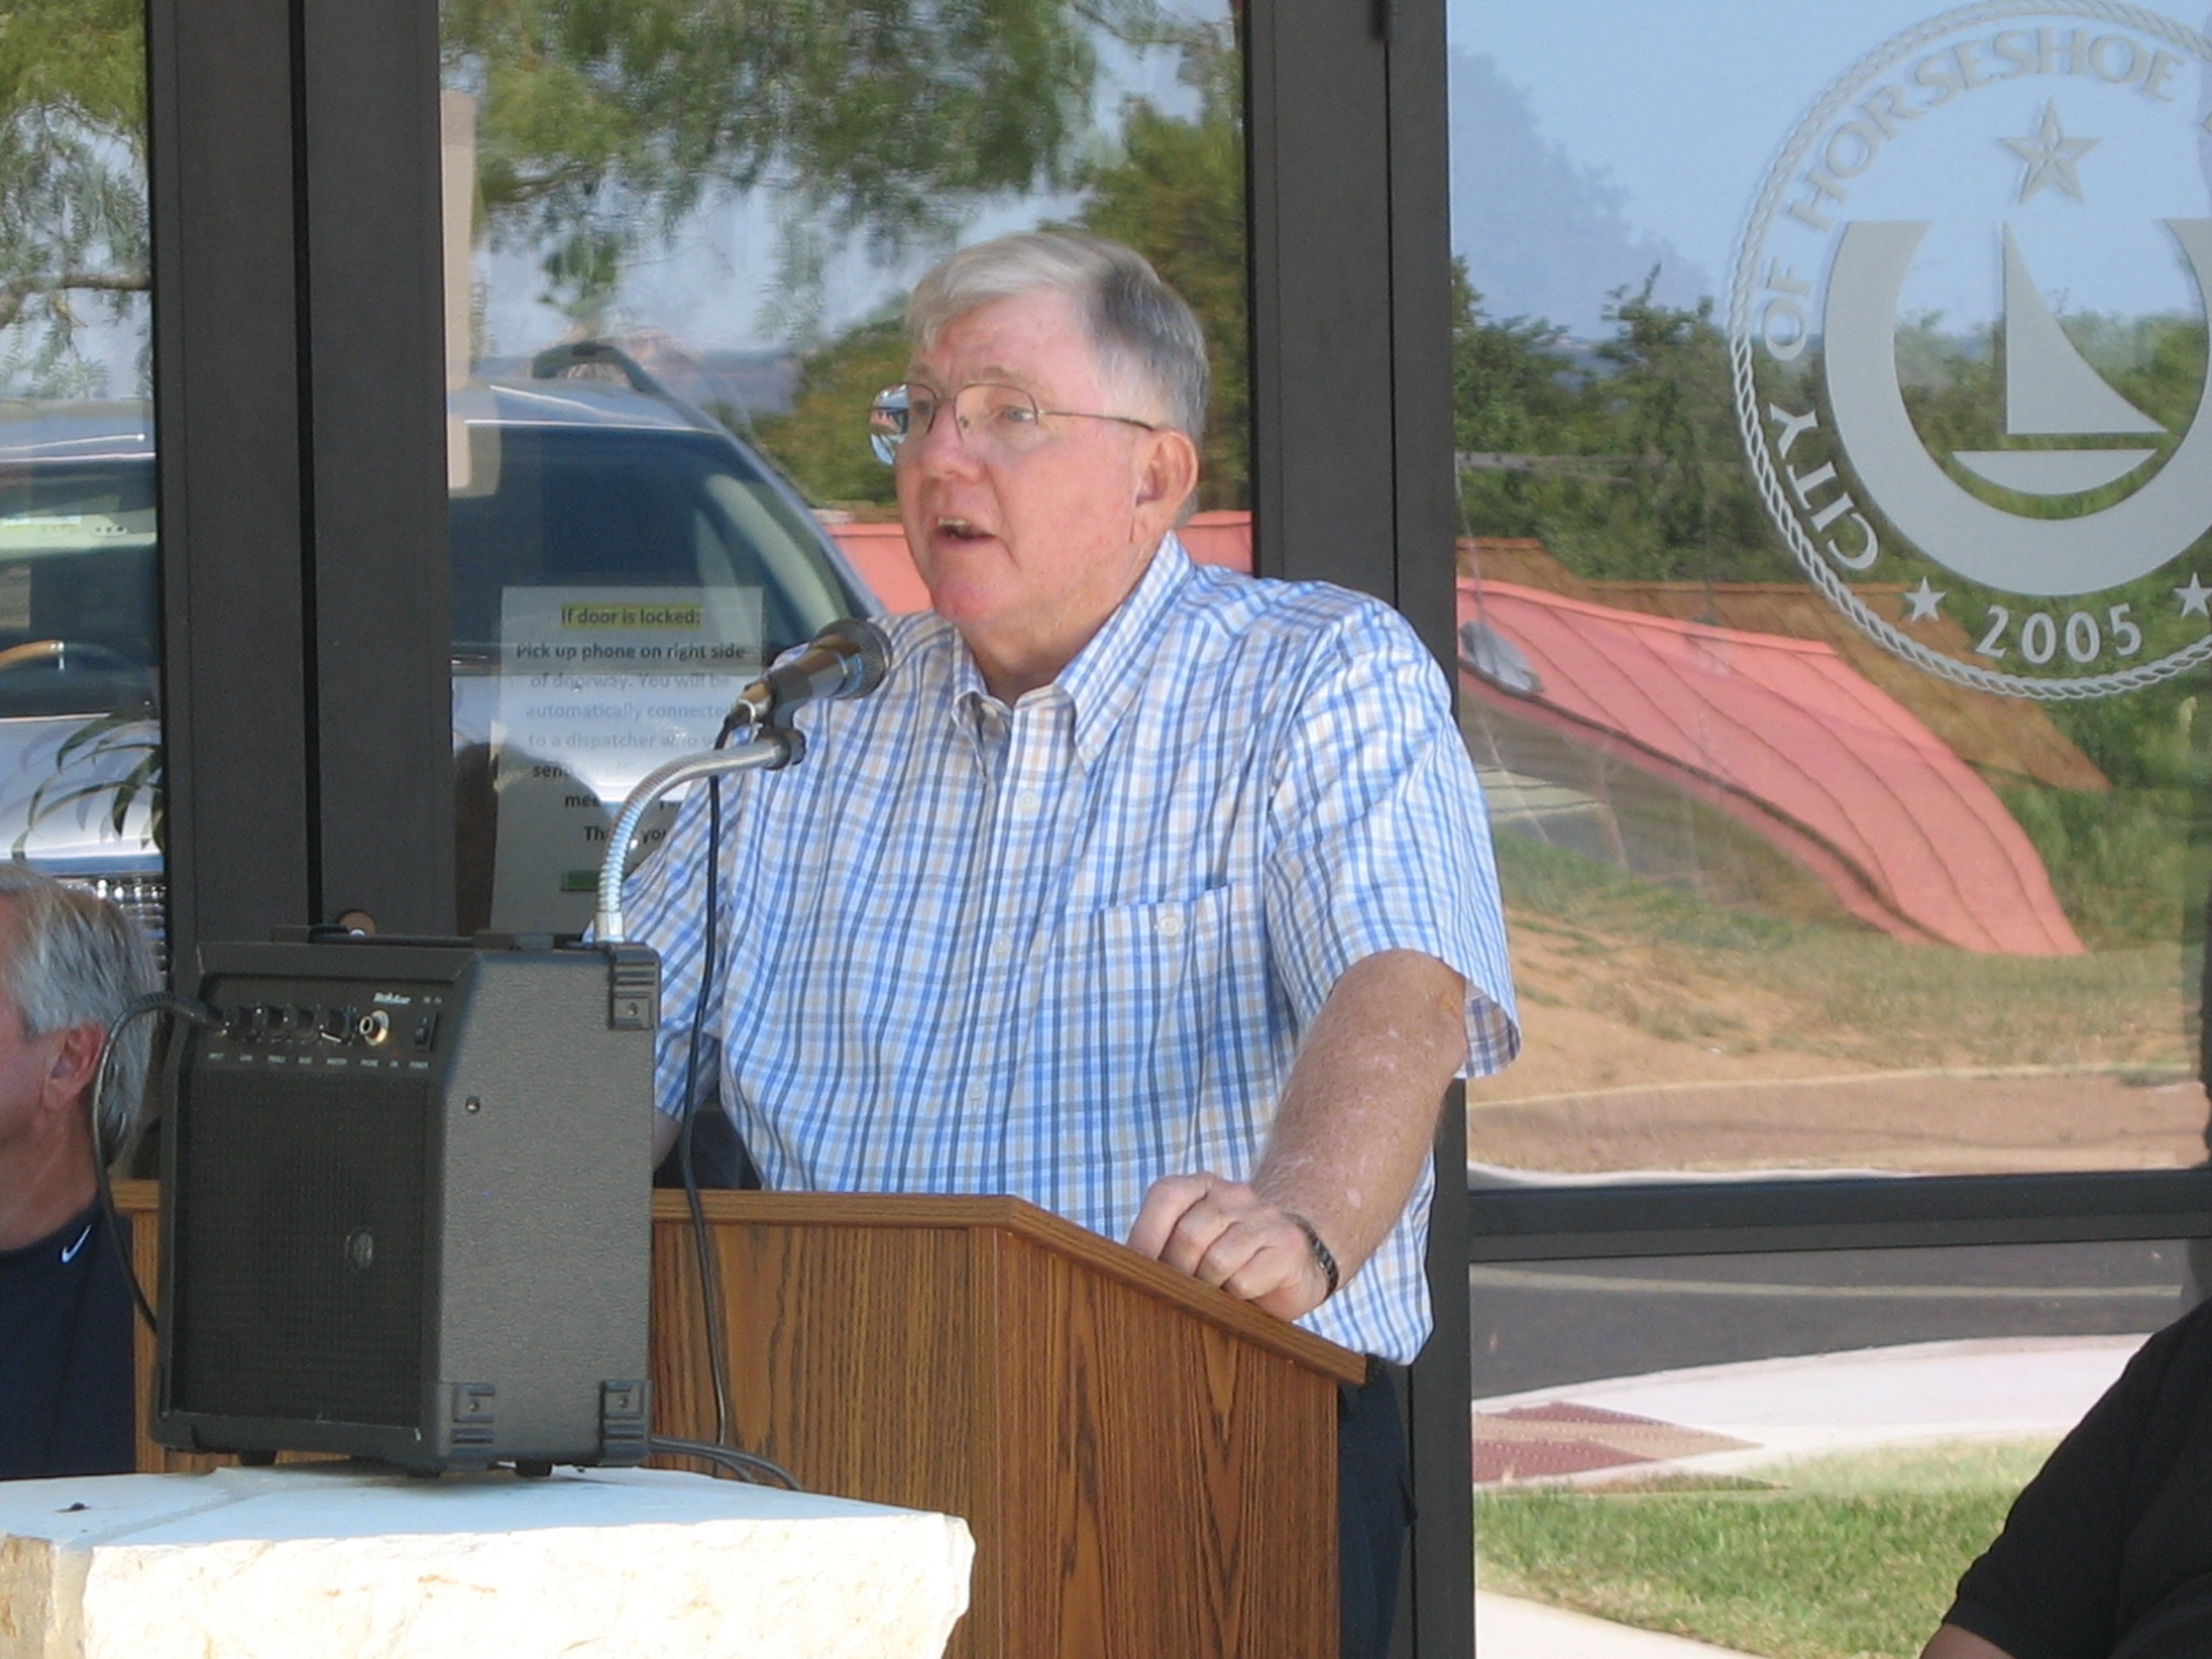 A man in a blue shirt speaking at a podium